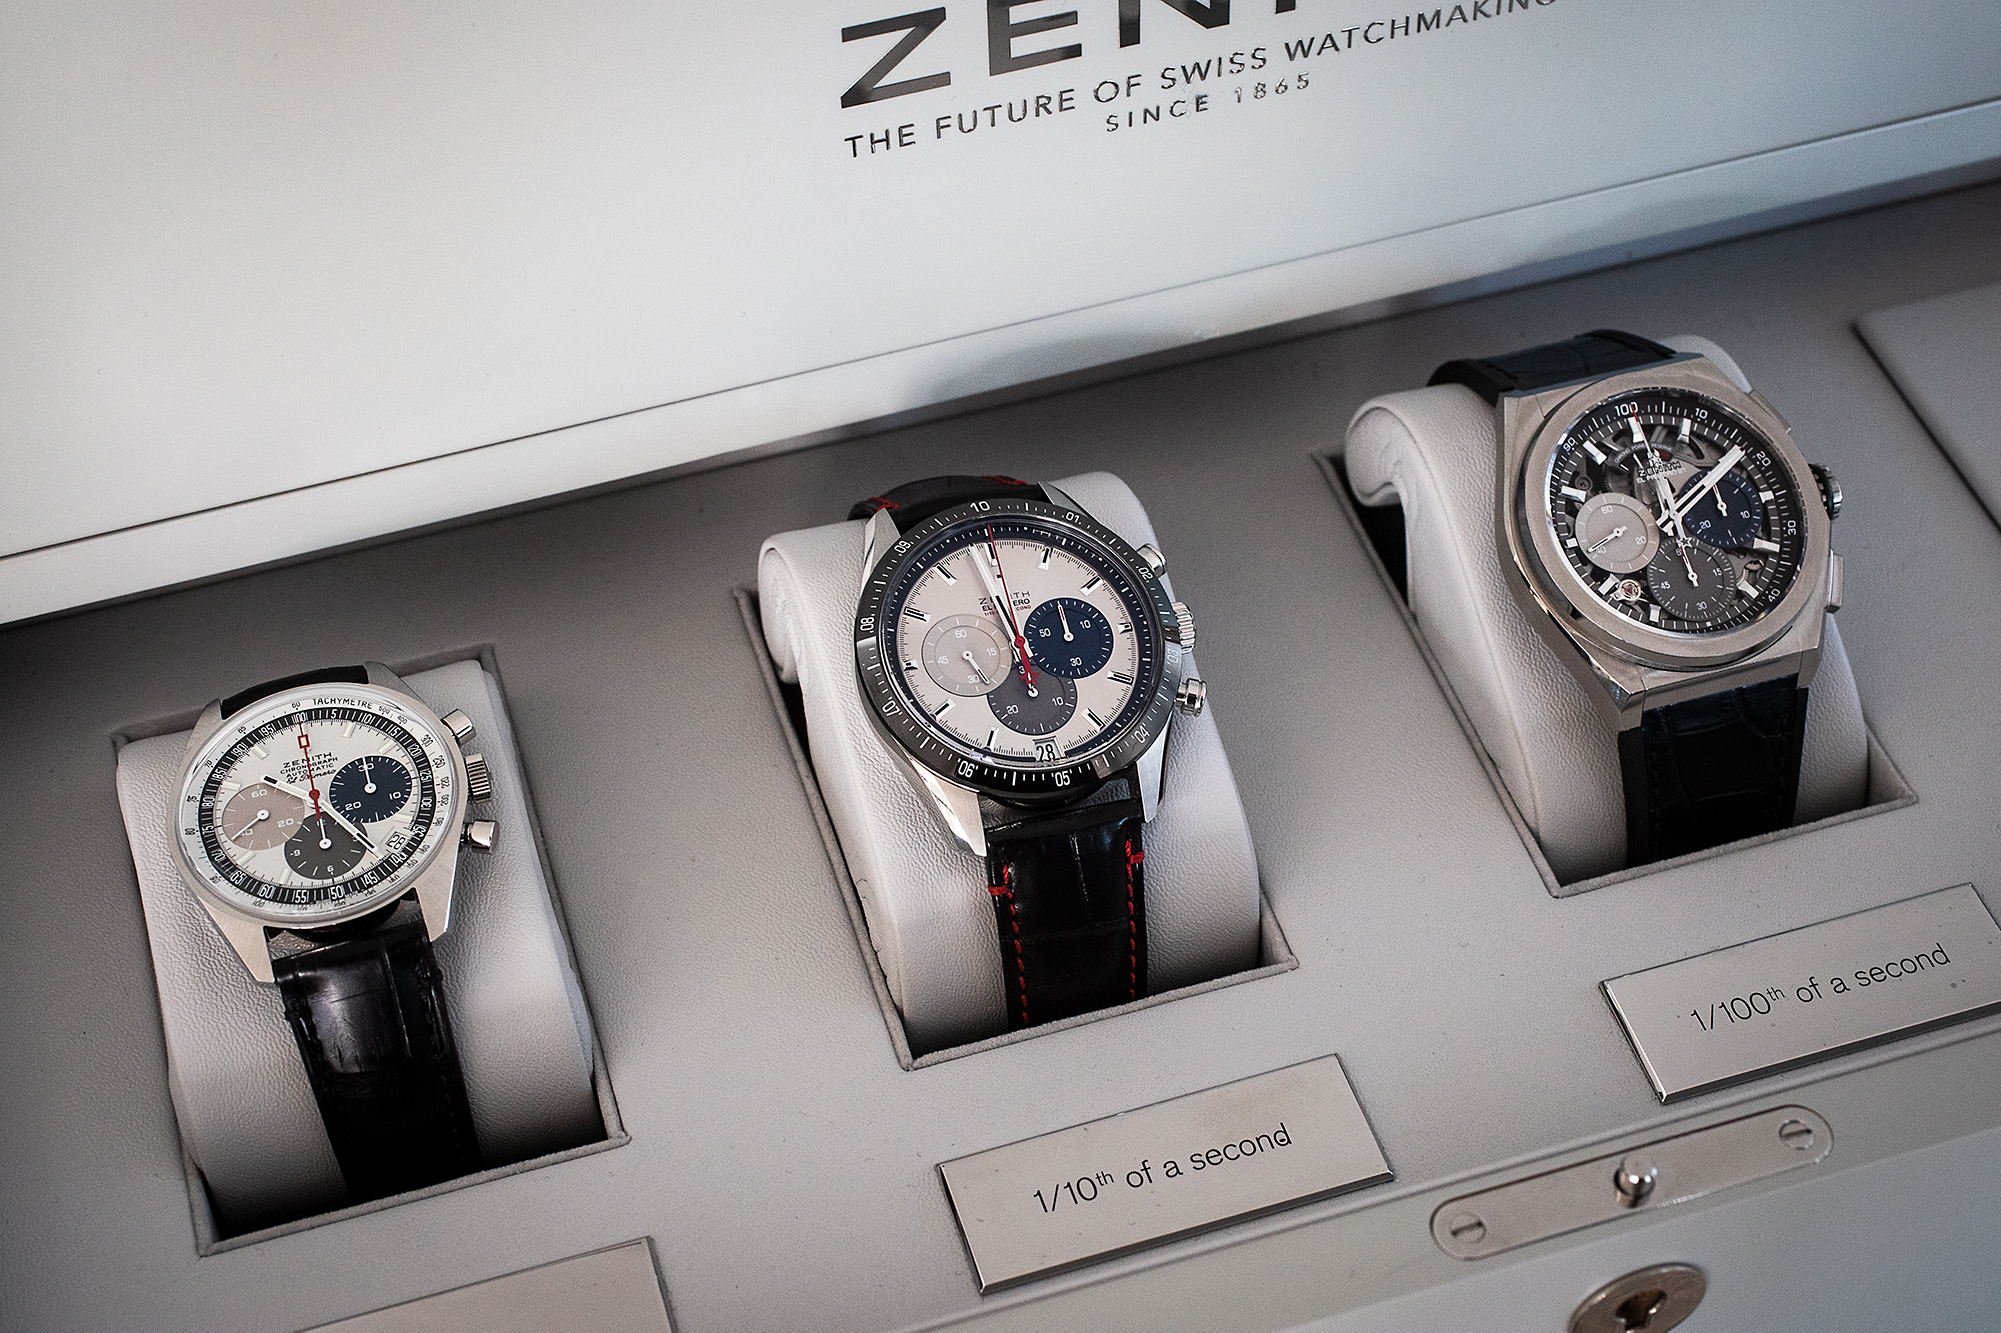 Zenith Baselworld 2019 Watch Releases